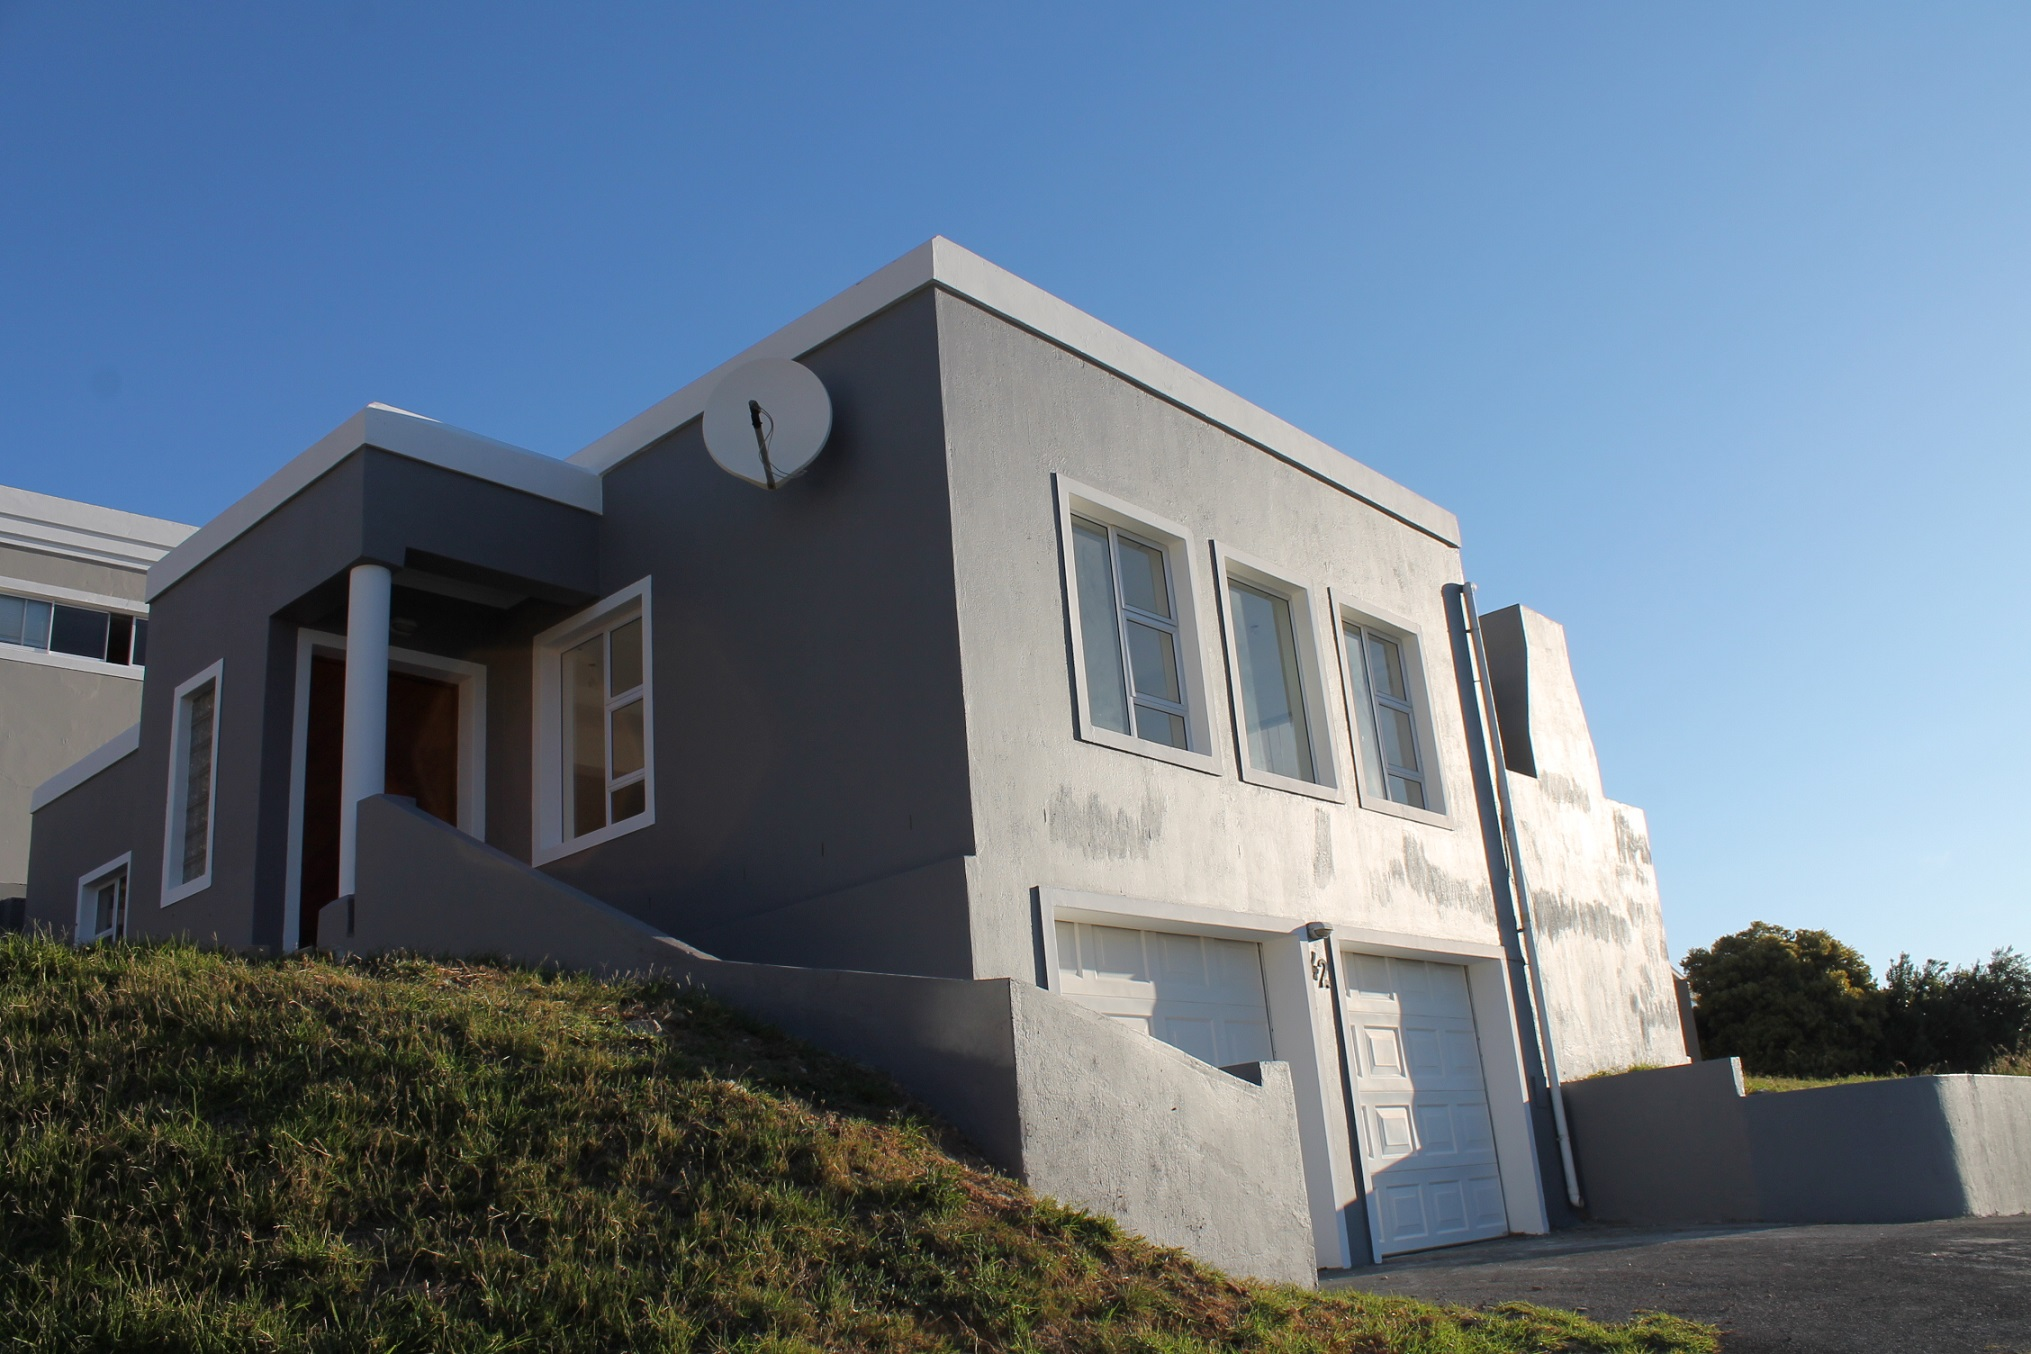 4 Bedroom House for sale in Mountainside ENT0009453 : photo#0